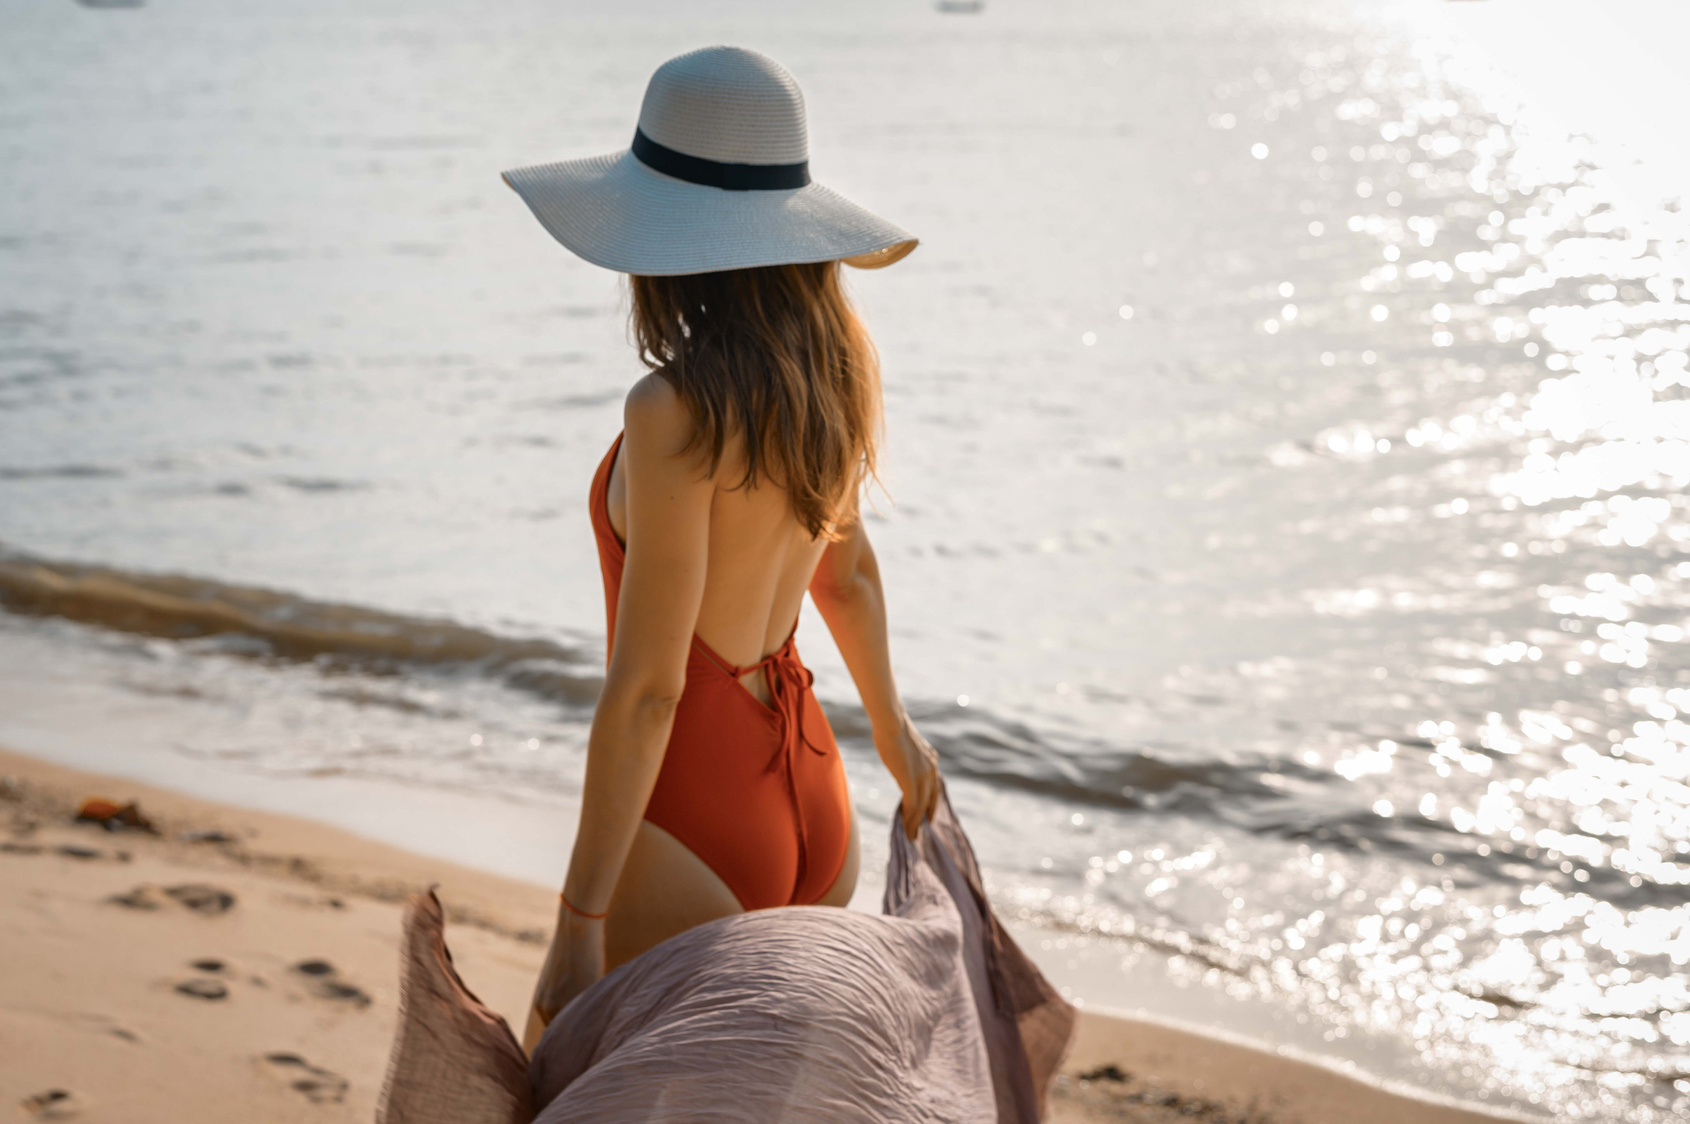 Beautiful woman with red swimsuit on the beach in Summer